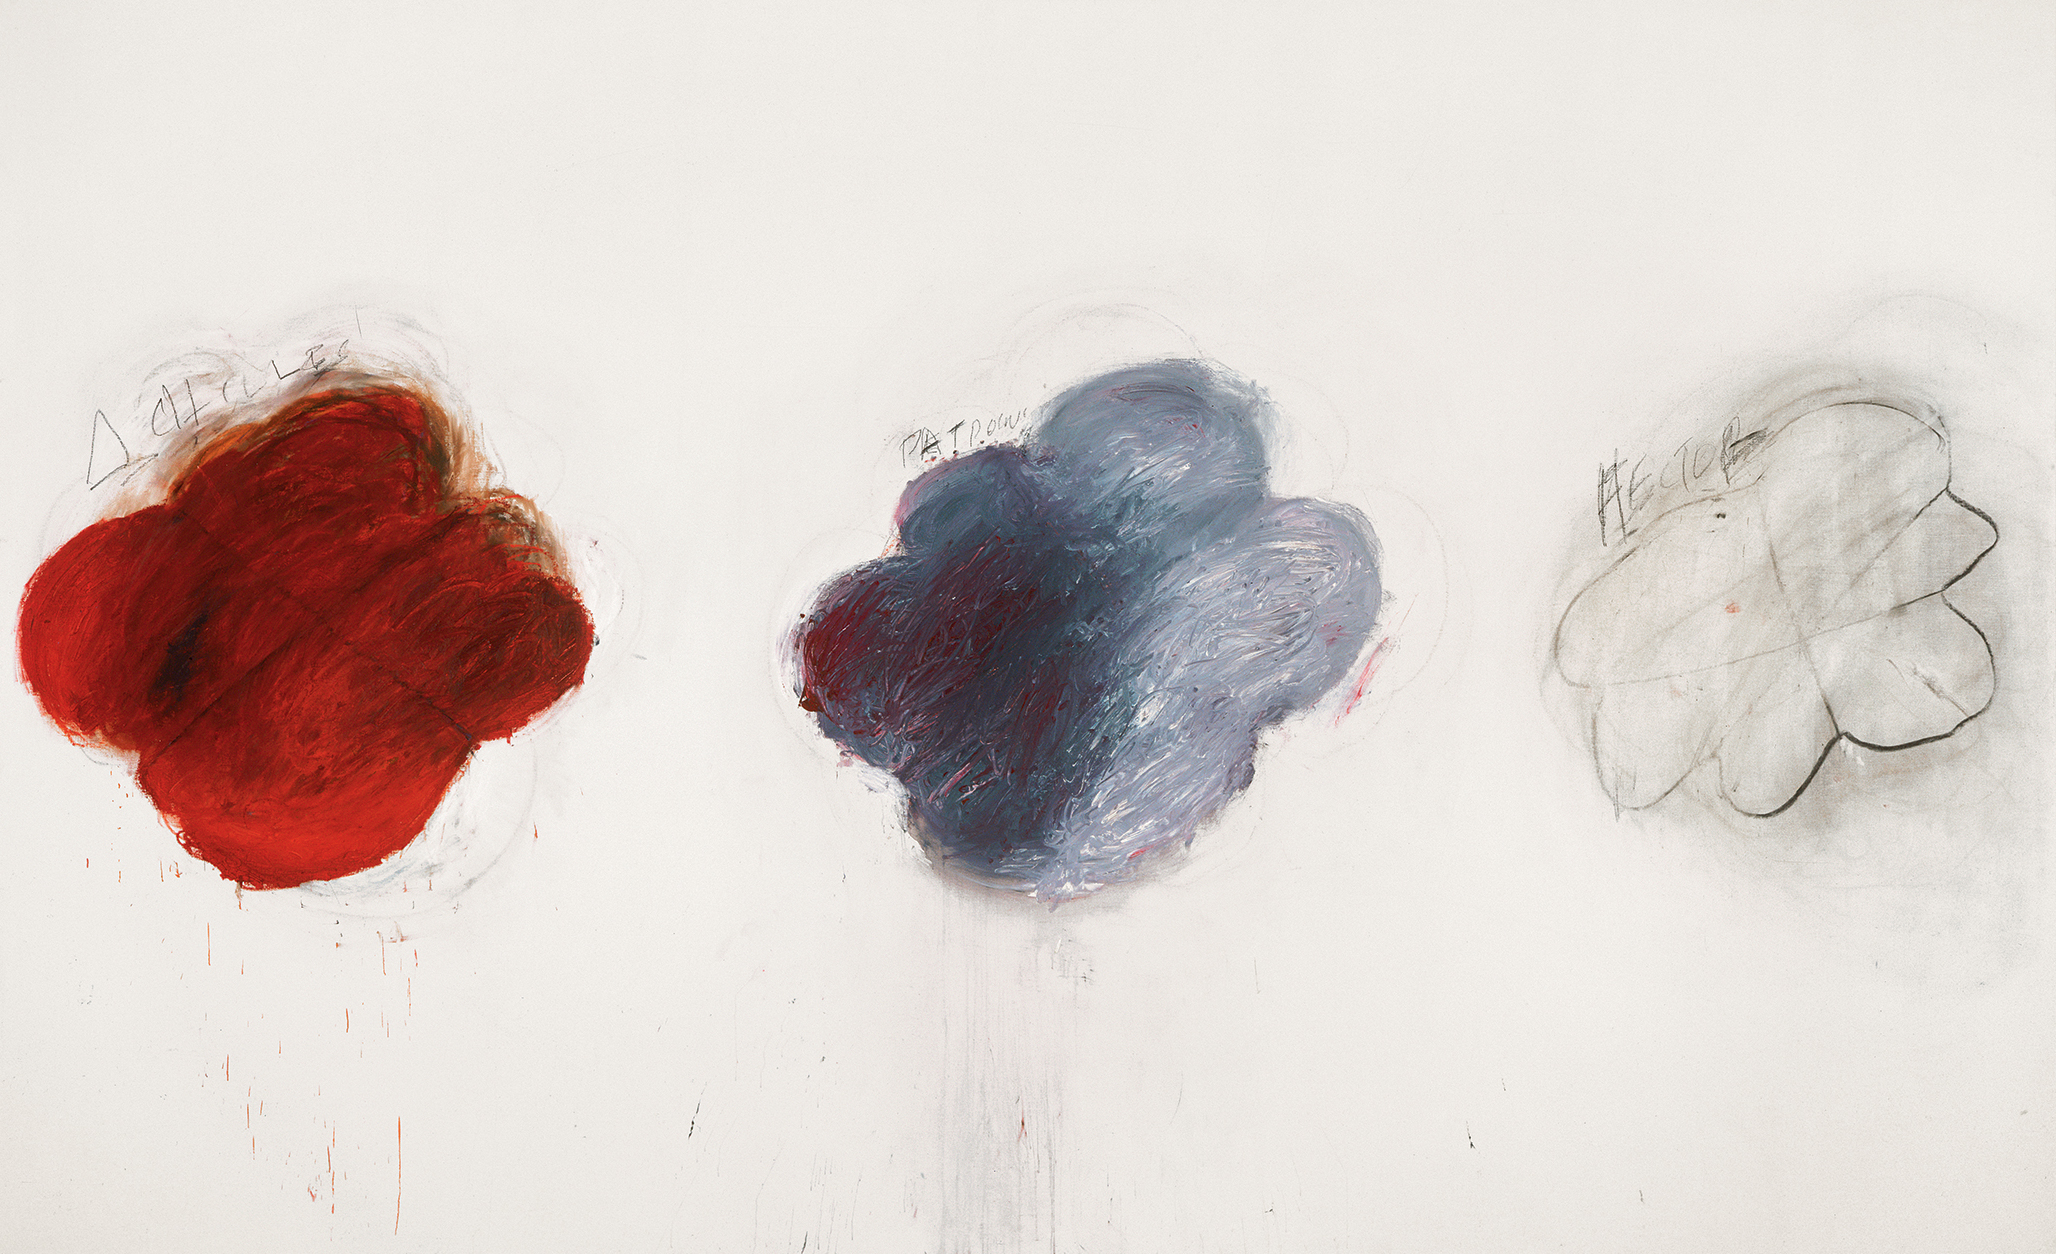 Fifty Days at Iliam Shades of Achilles, Patroclus and Hector, Part VI (1978), by Cy Twombly. Oil, oil crayon and pencil, 299.7 x 491.5 cm. Philadelphia Museum of Art. © Courtesy of Philadelphia Museum of Art, Philadelphia.